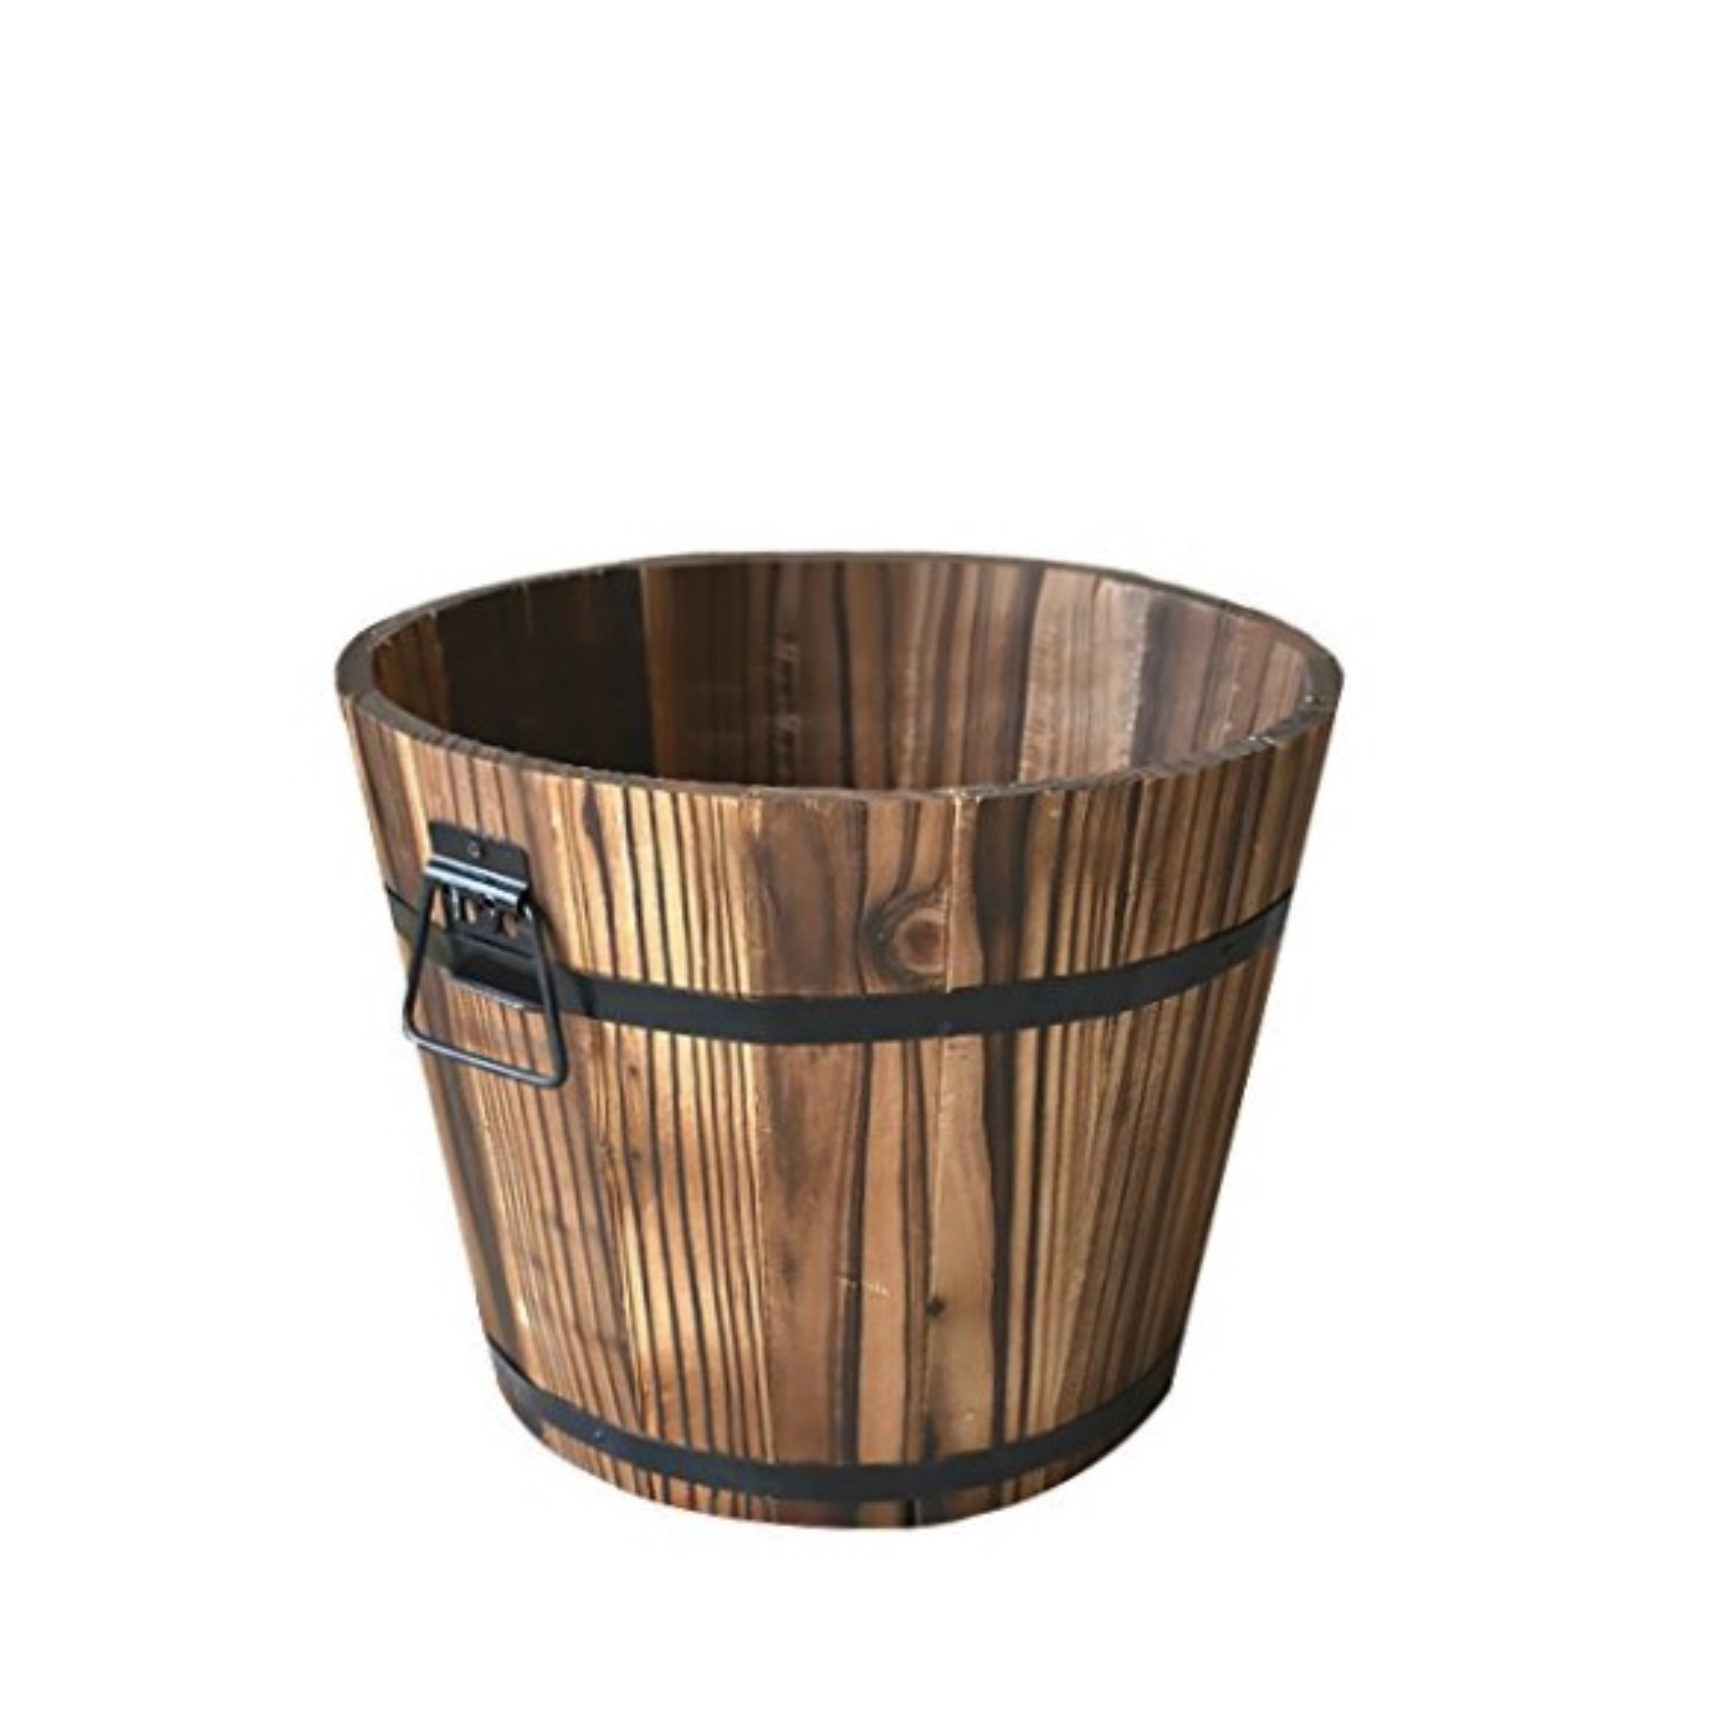 WOODEN BARREL BUCKET  Approx. size 25 x 18cm